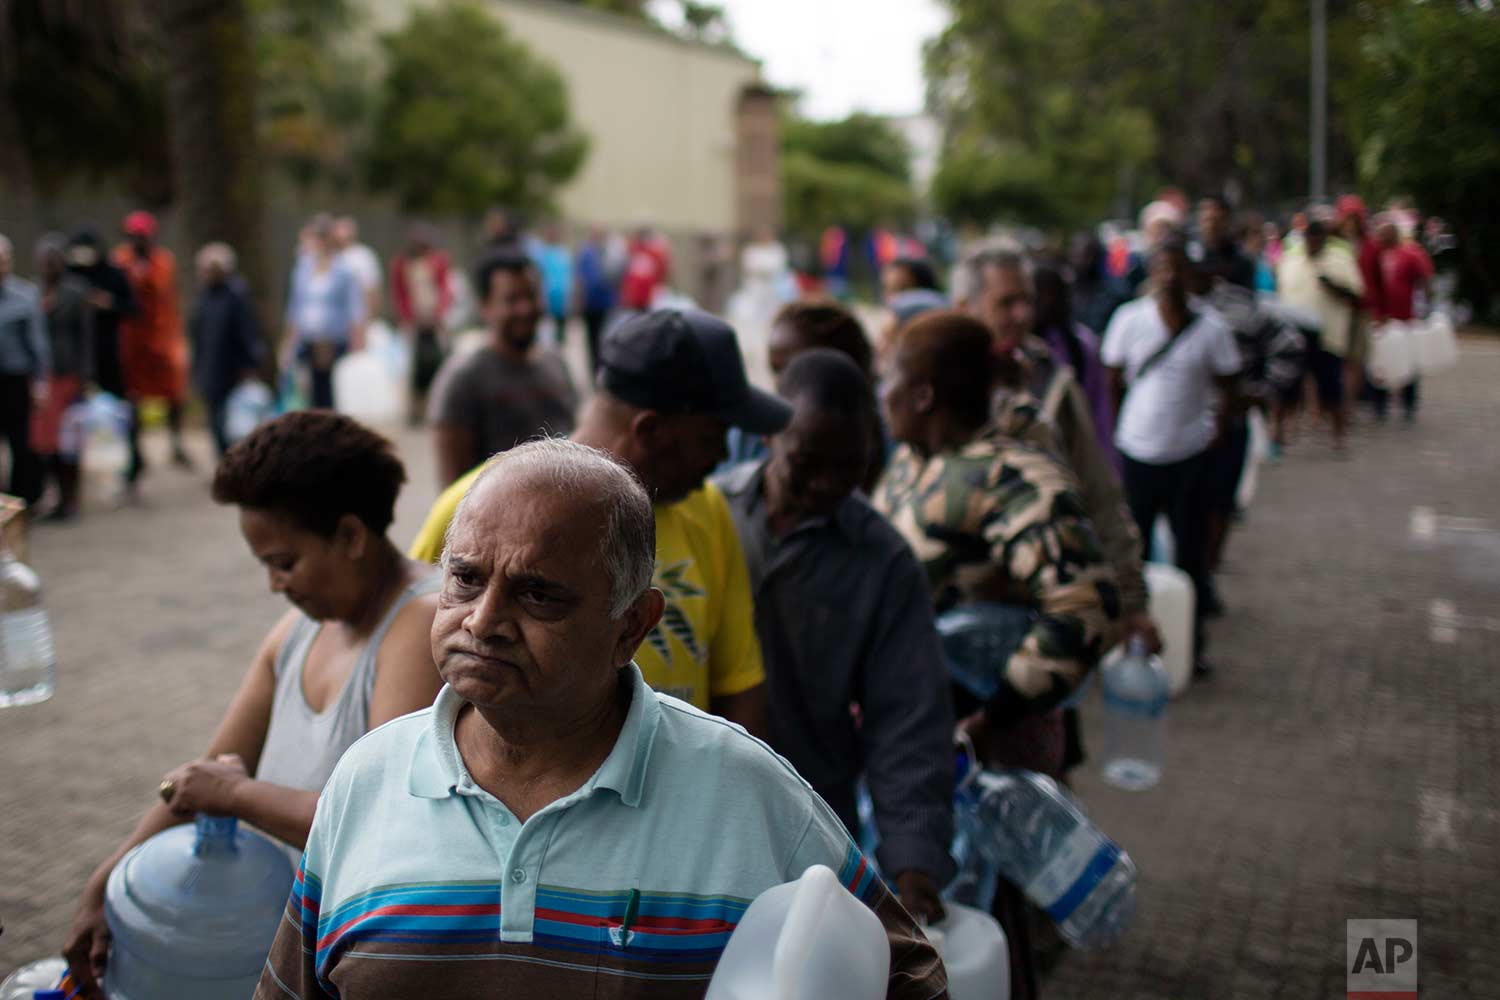 Residents queue to fill containers with water from a source of natural spring water in Cape Town, South Africa, Friday, Feb. 2, 2018. (AP Photo/Bram Janssen)